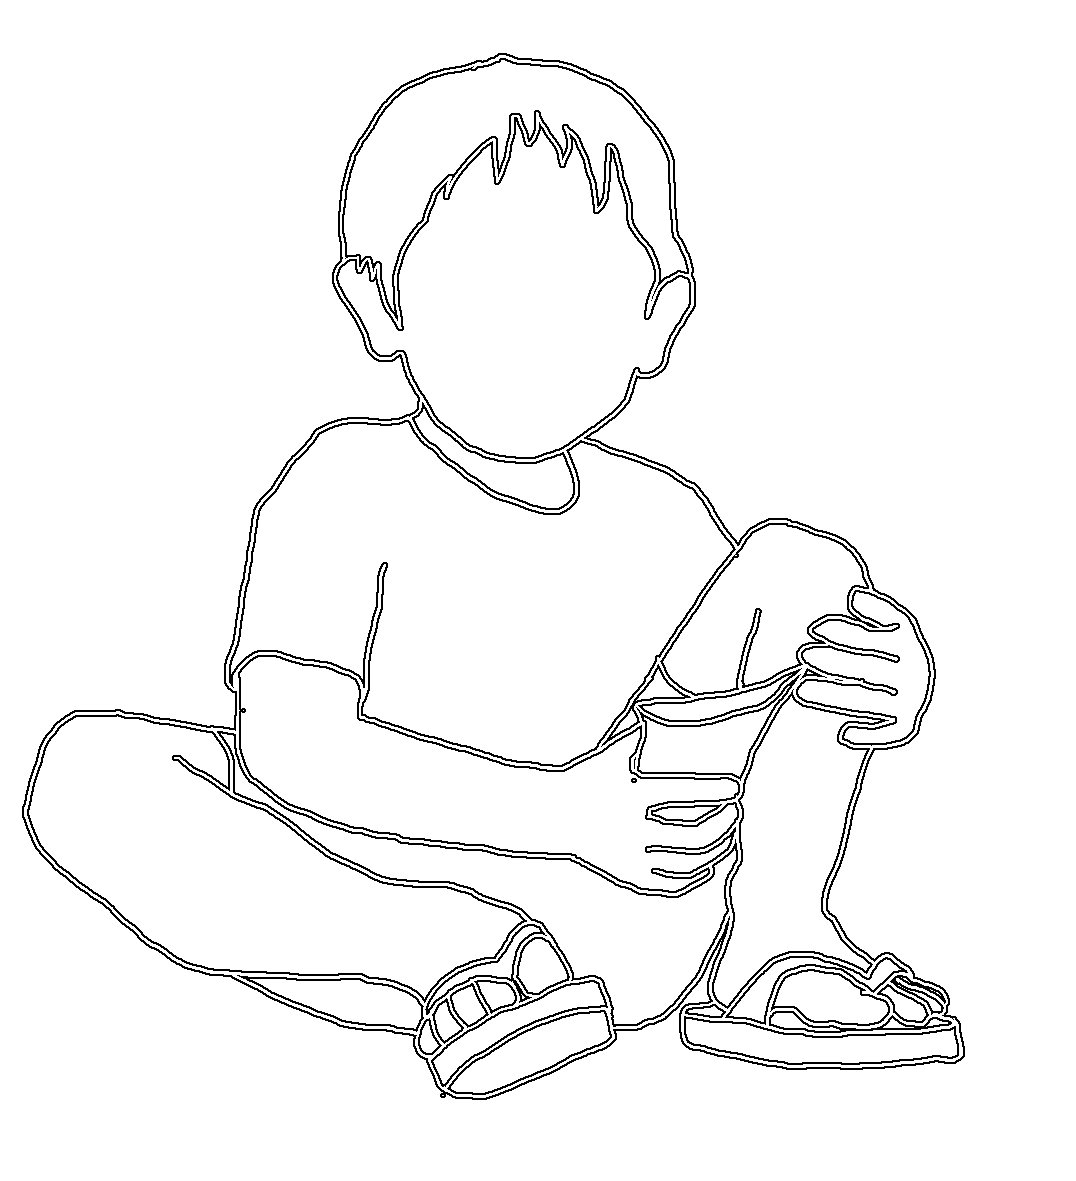 Clipart child sitting criss cross svg library download Boy Sitting Drawing at GetDrawings.com | Free for personal use Boy ... svg library download